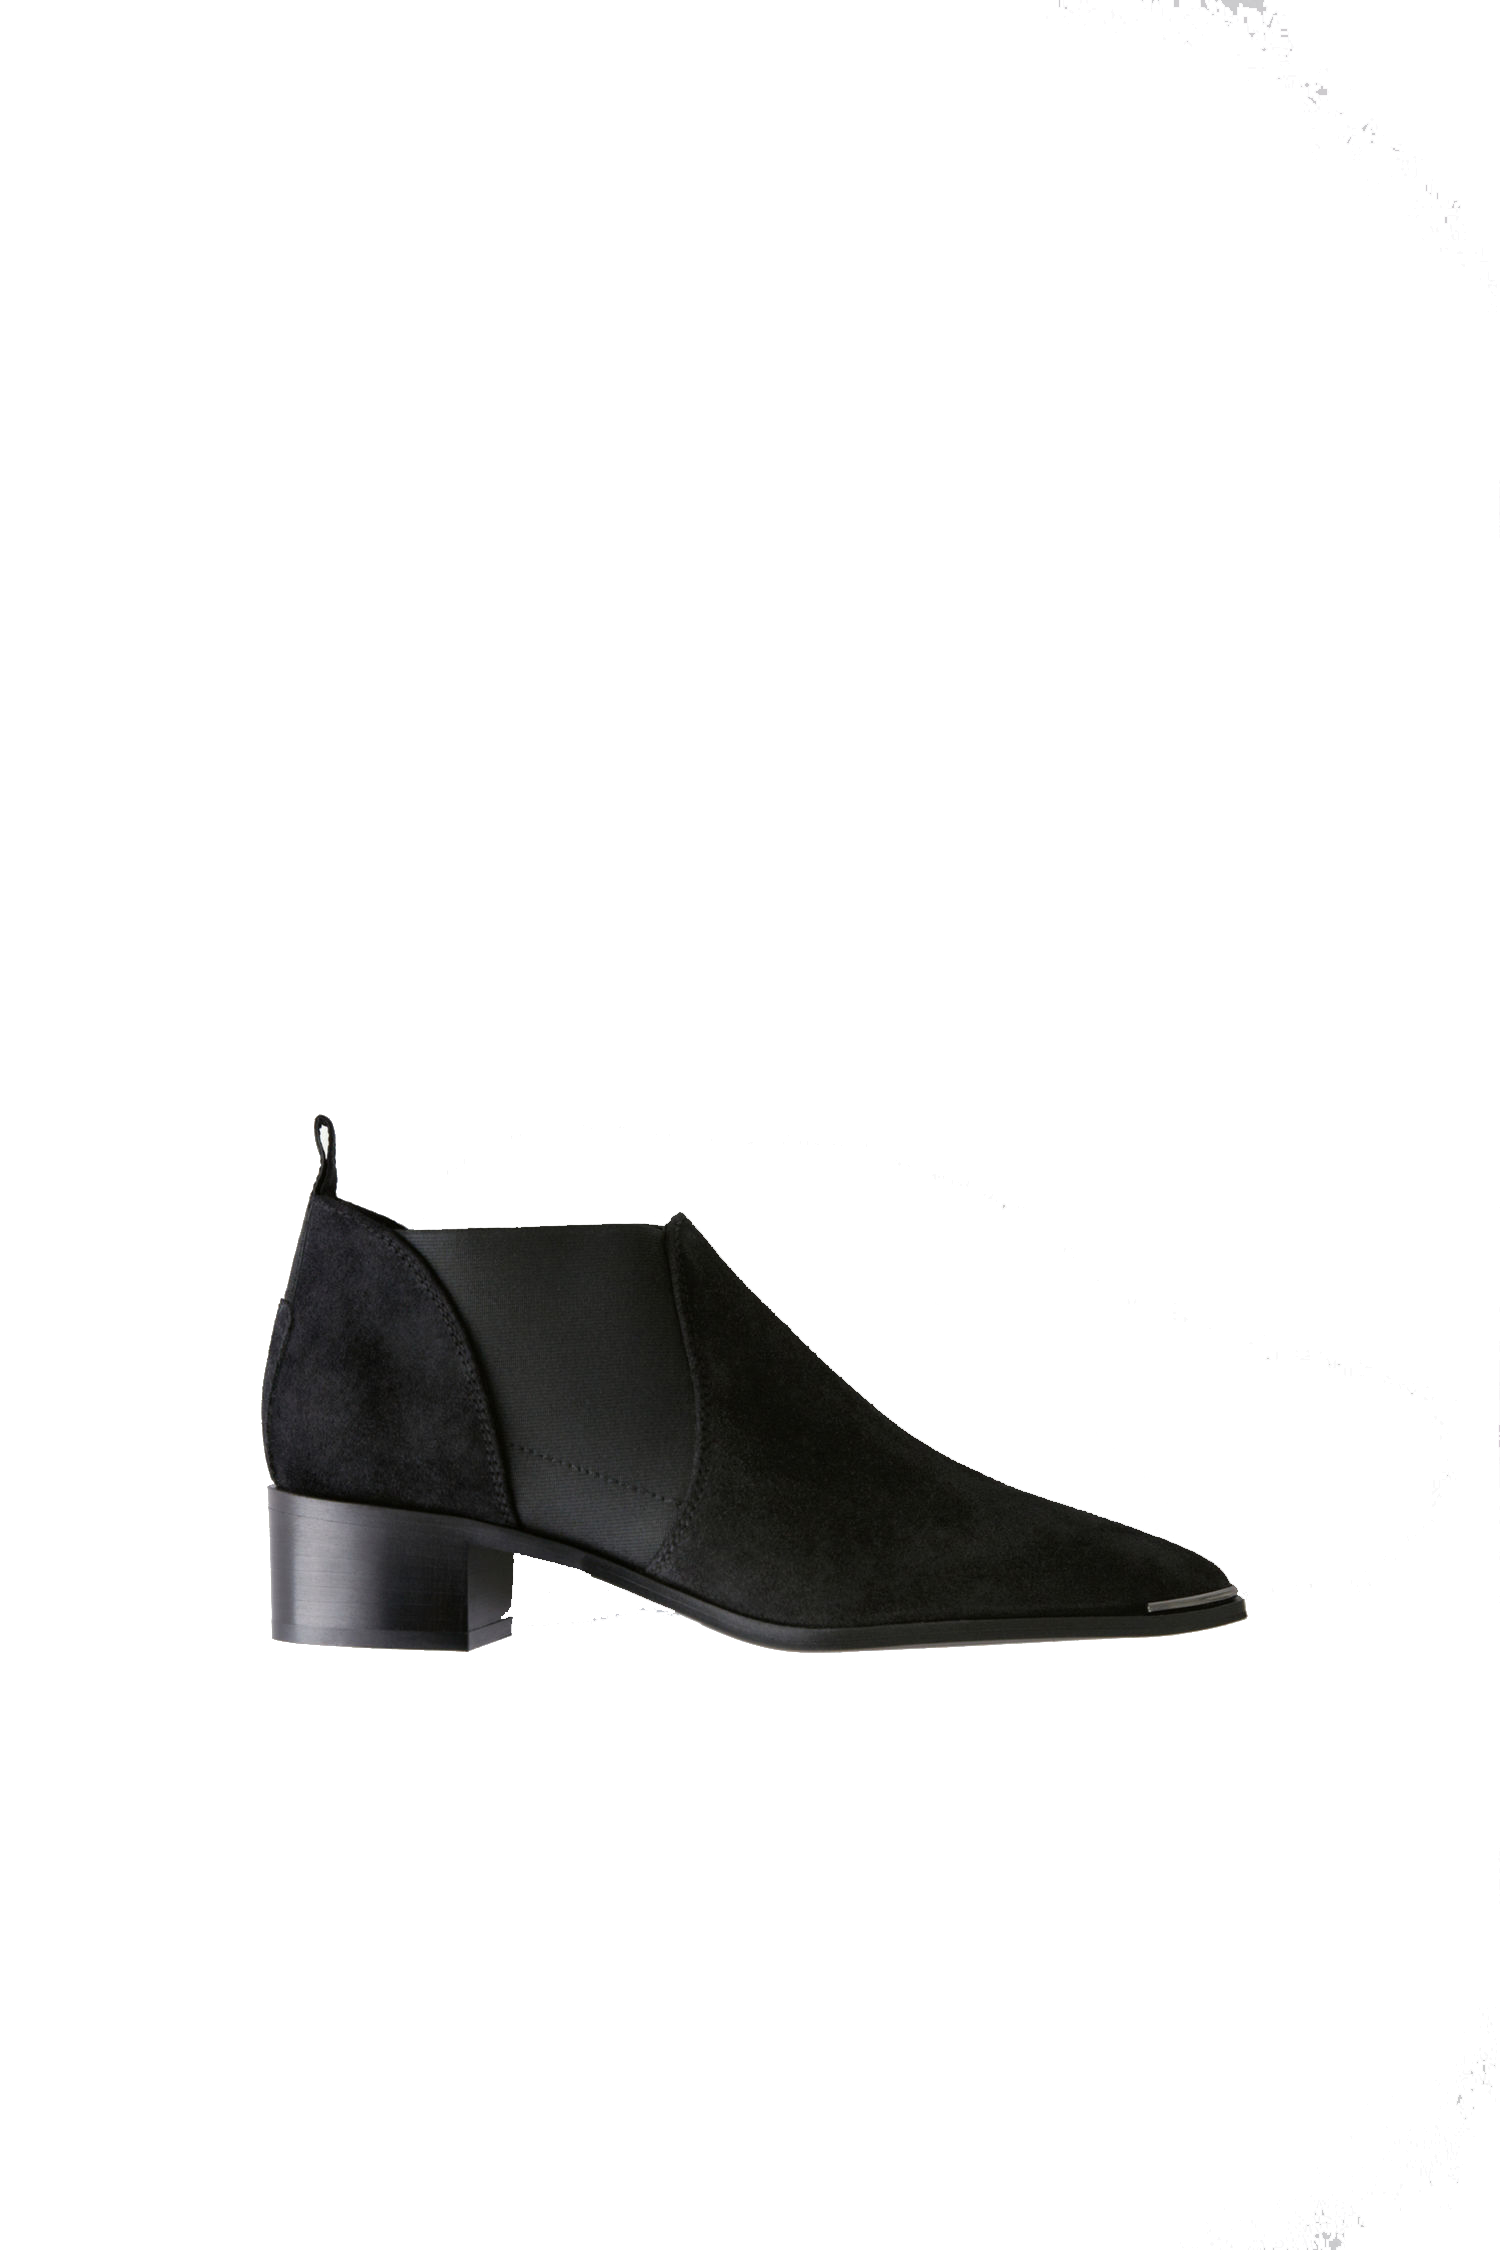 Image of Acne Studios Jenny Boots, black suede